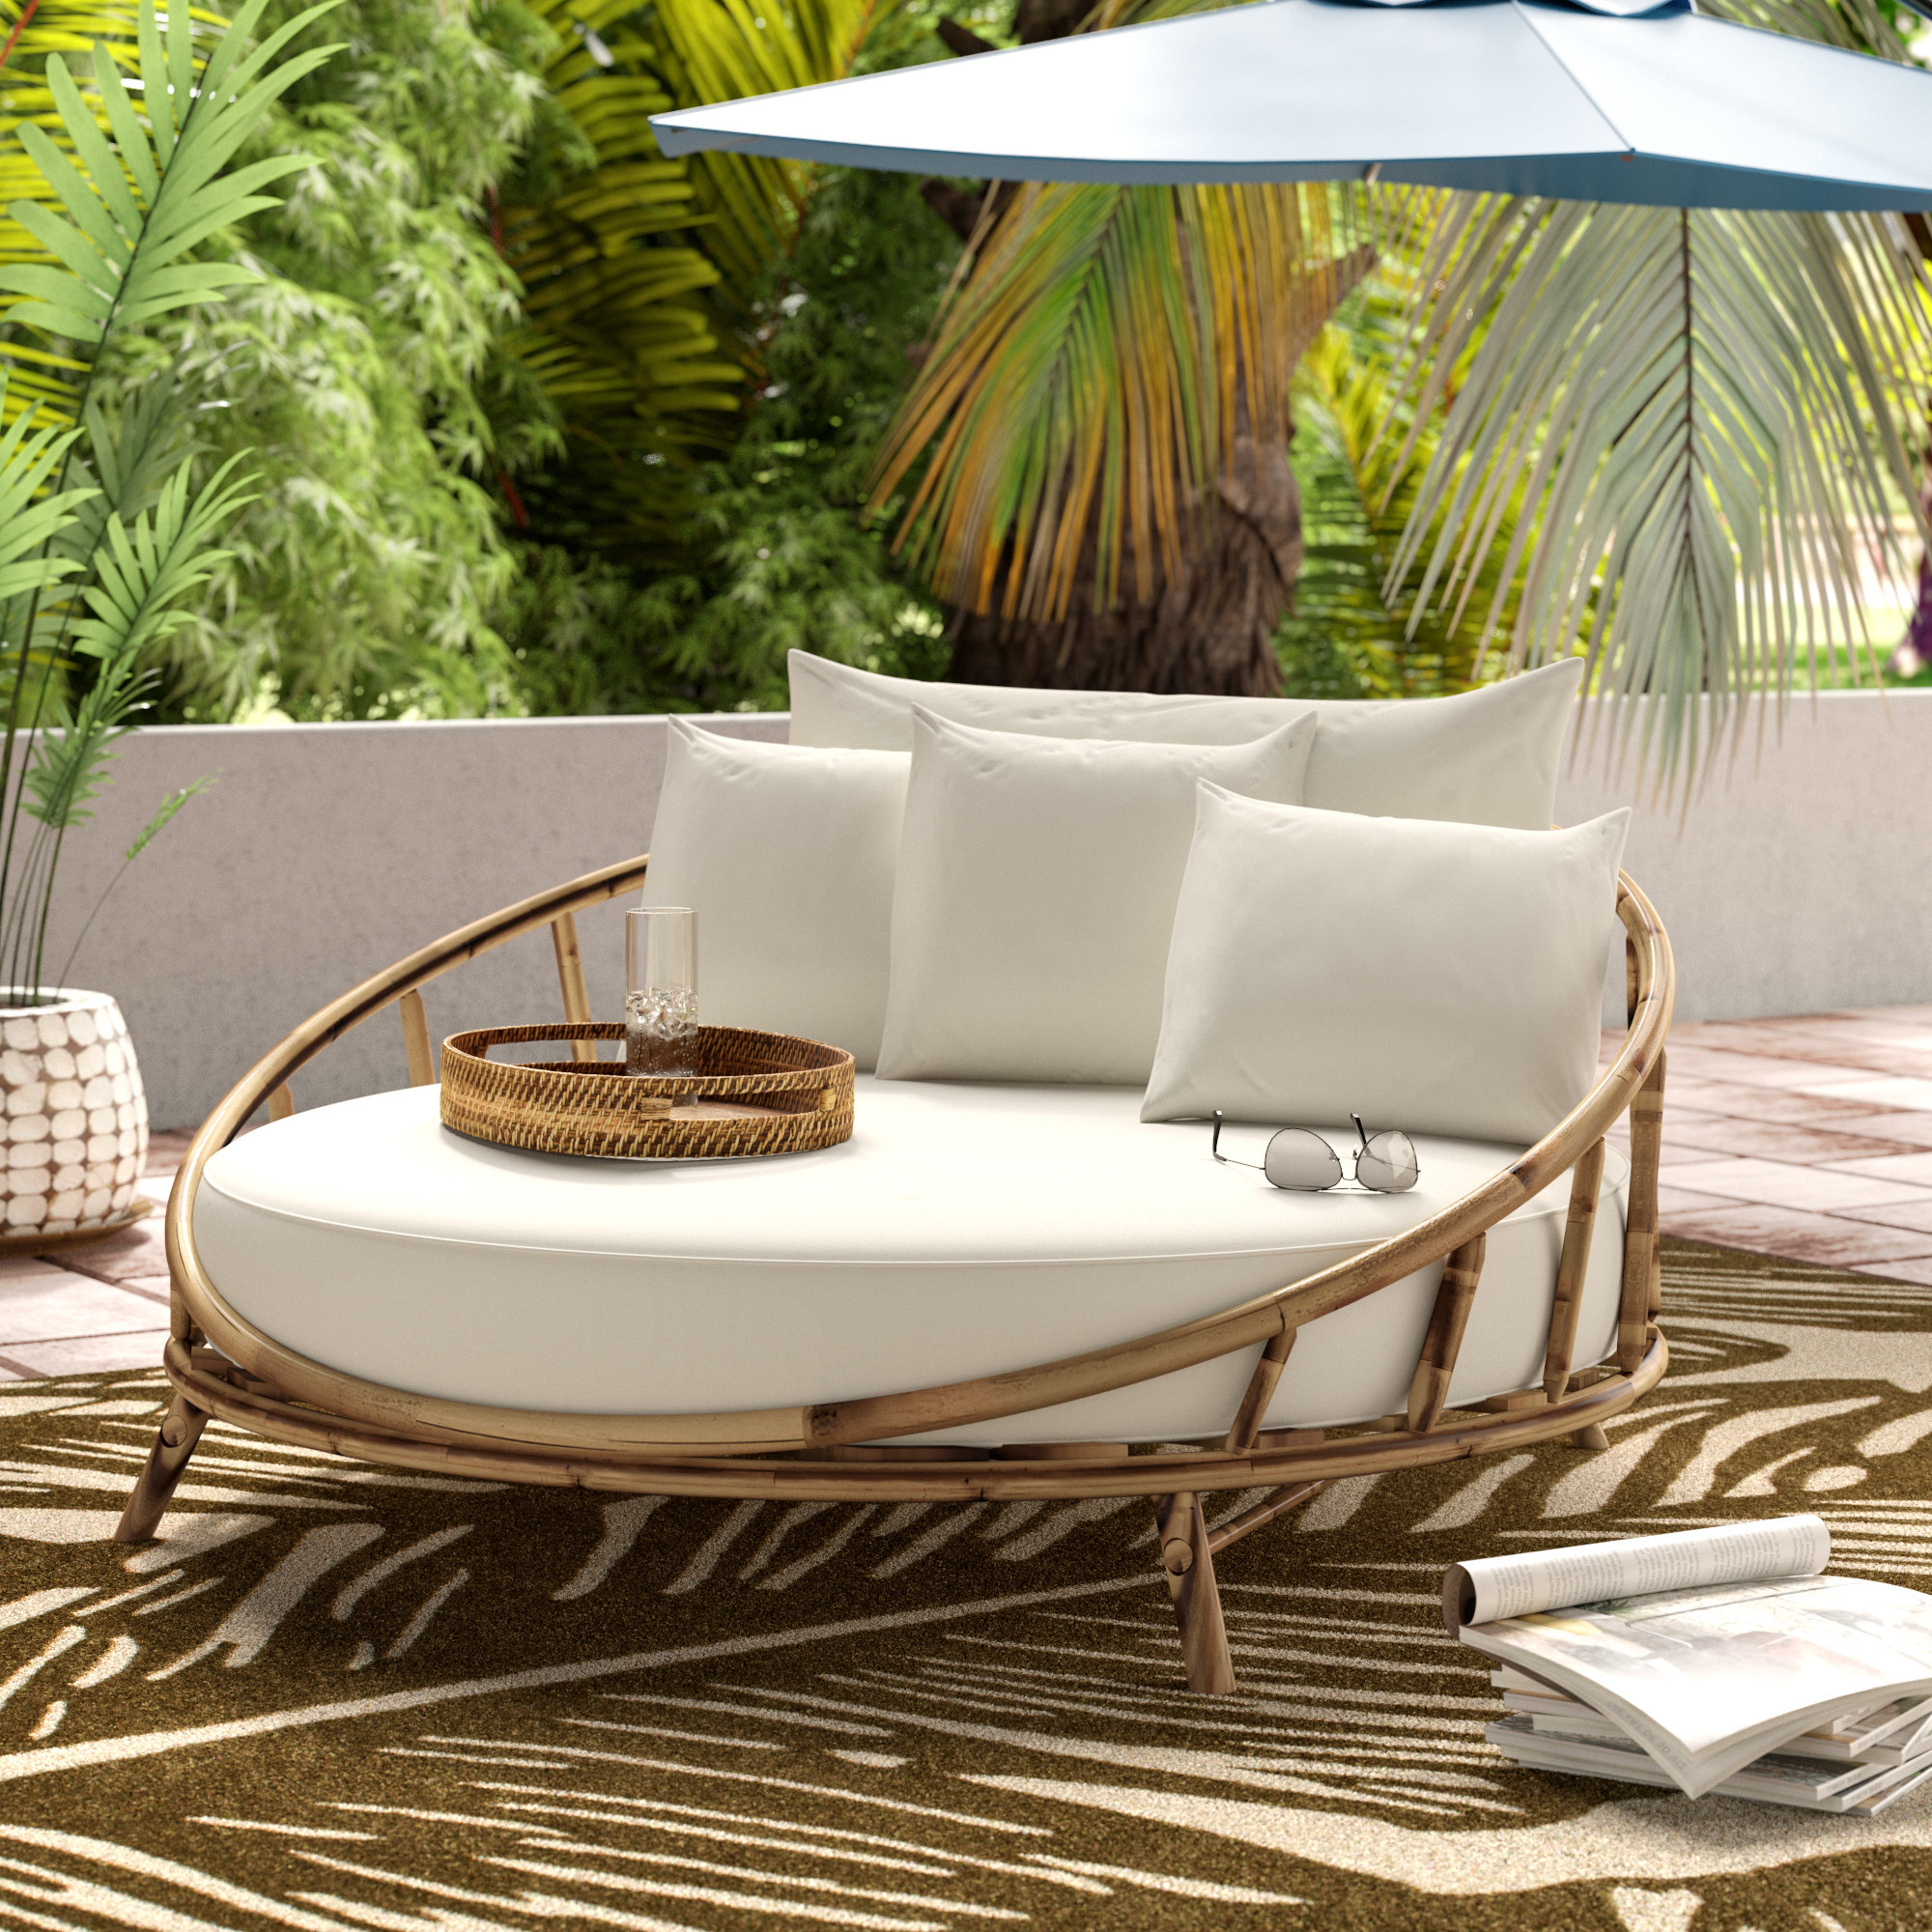 Widely Used Grosvenor Bamboo Patio Daybeds With Cushions Within Bayou Breeze Olu Bamboo Large Round Patio Daybed With Cushions (View 20 of 20)